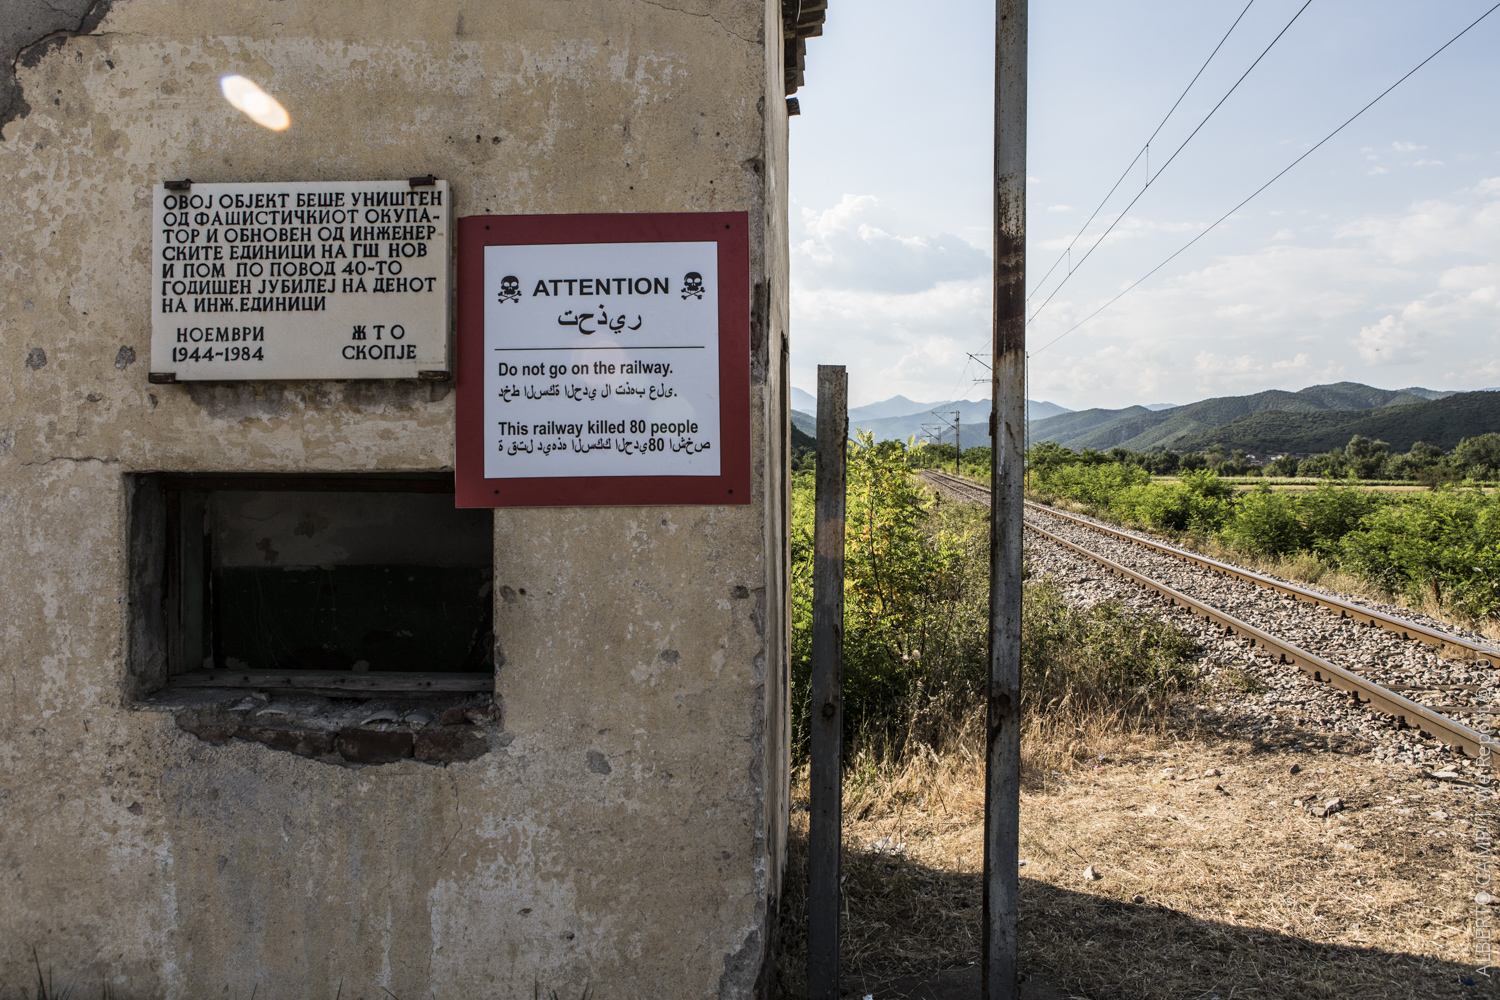 Example of signs on the railway. Udovo, FYROM (Republic of Macedonia). 2015